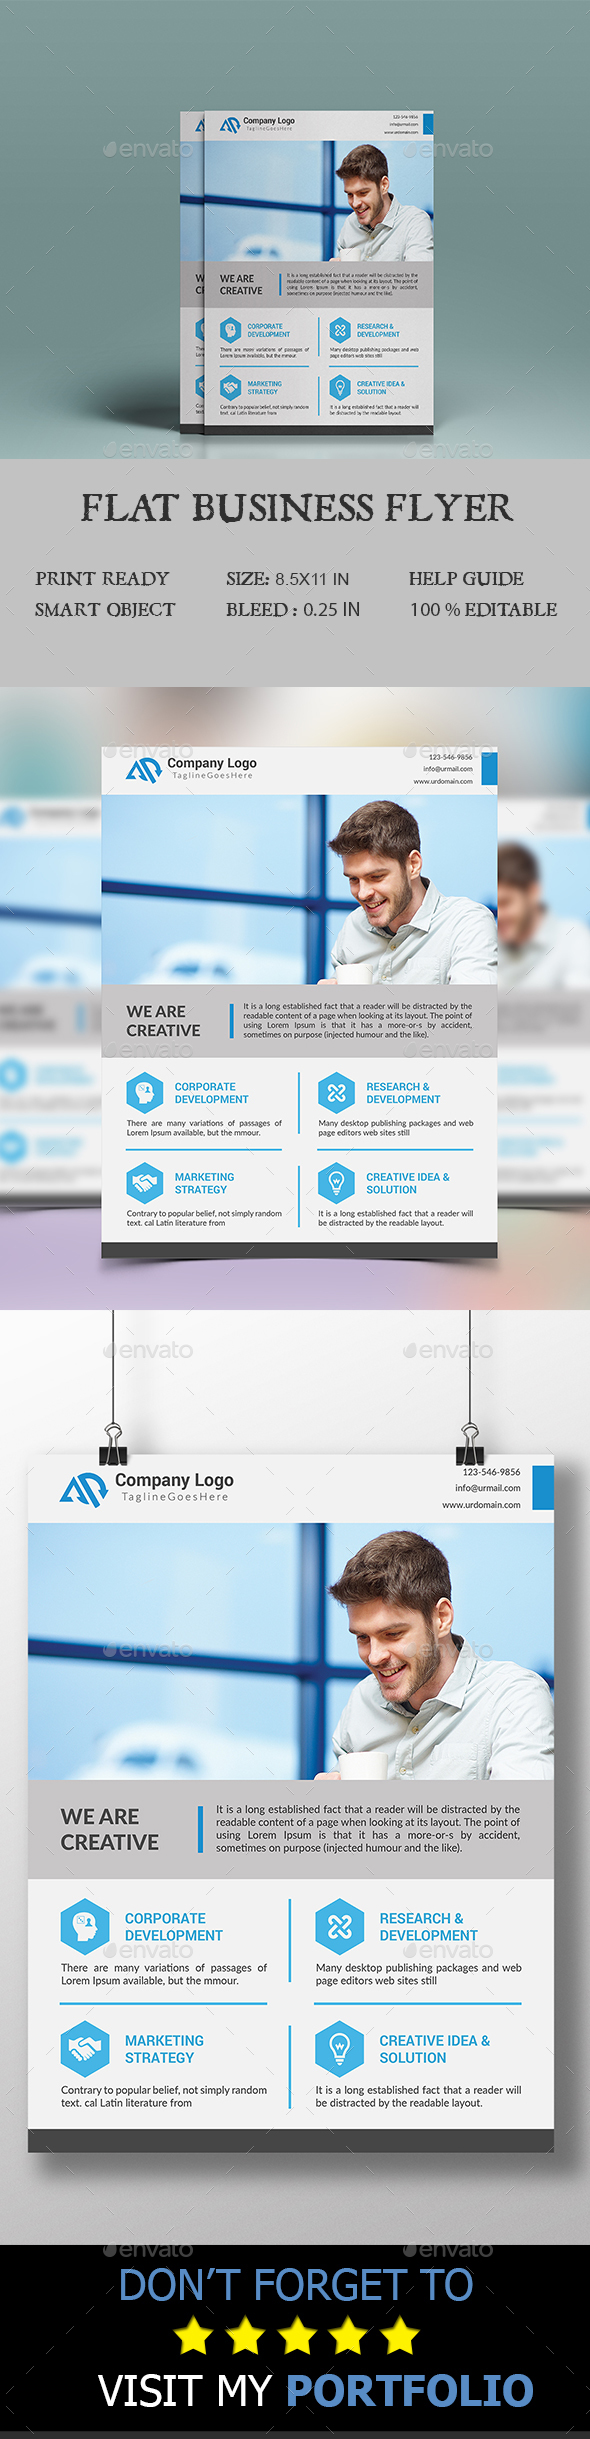 Flat Business Flyer - Corporate Flyers